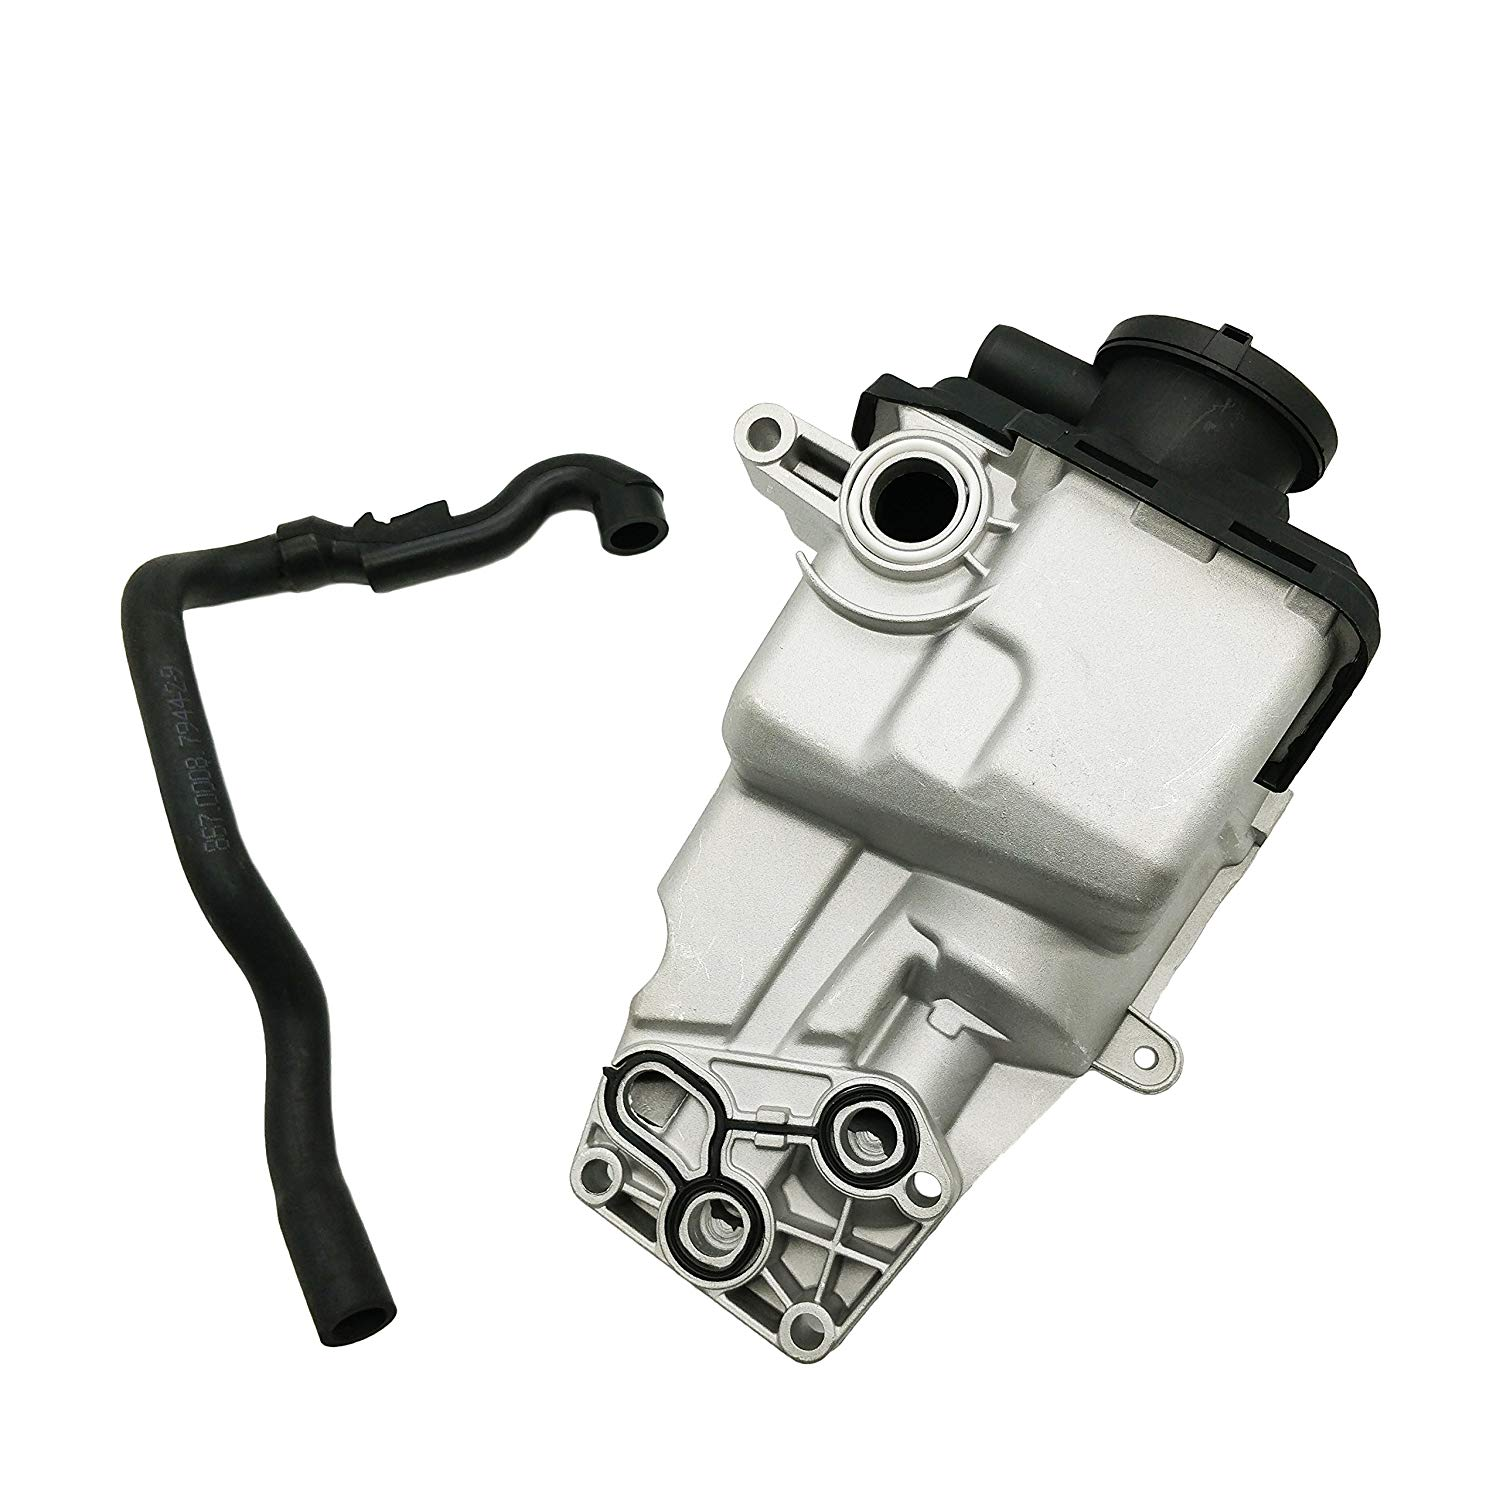 hight resolution of get quotations okay motor pcv valve oil trap kit for volvo c30 c70 s40 s60